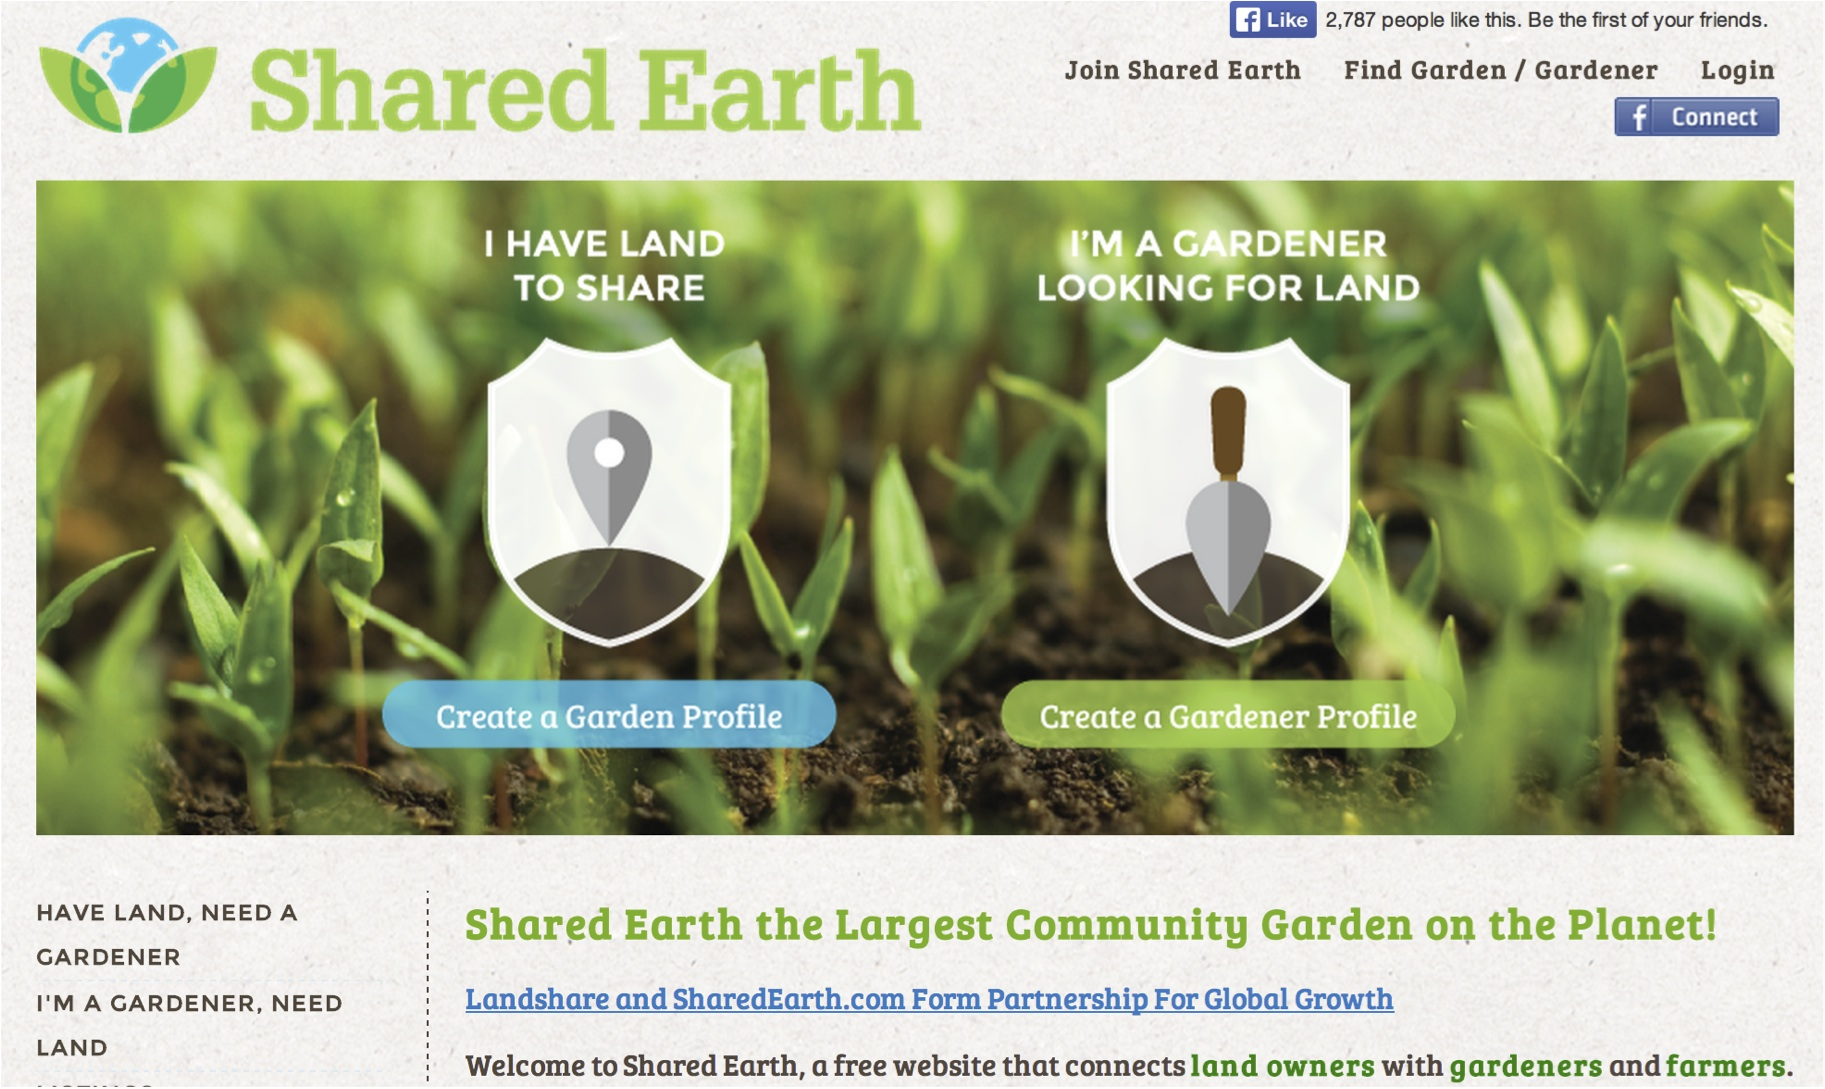 S  haredEarth , a free site that connects landowners with gardeners interested in expanding their garden and farmers in need of space to grow crops. Here you can find access land in exchange for sharing some of the bounty with the landowner.      Image Courtesy:  SharedEarth.com